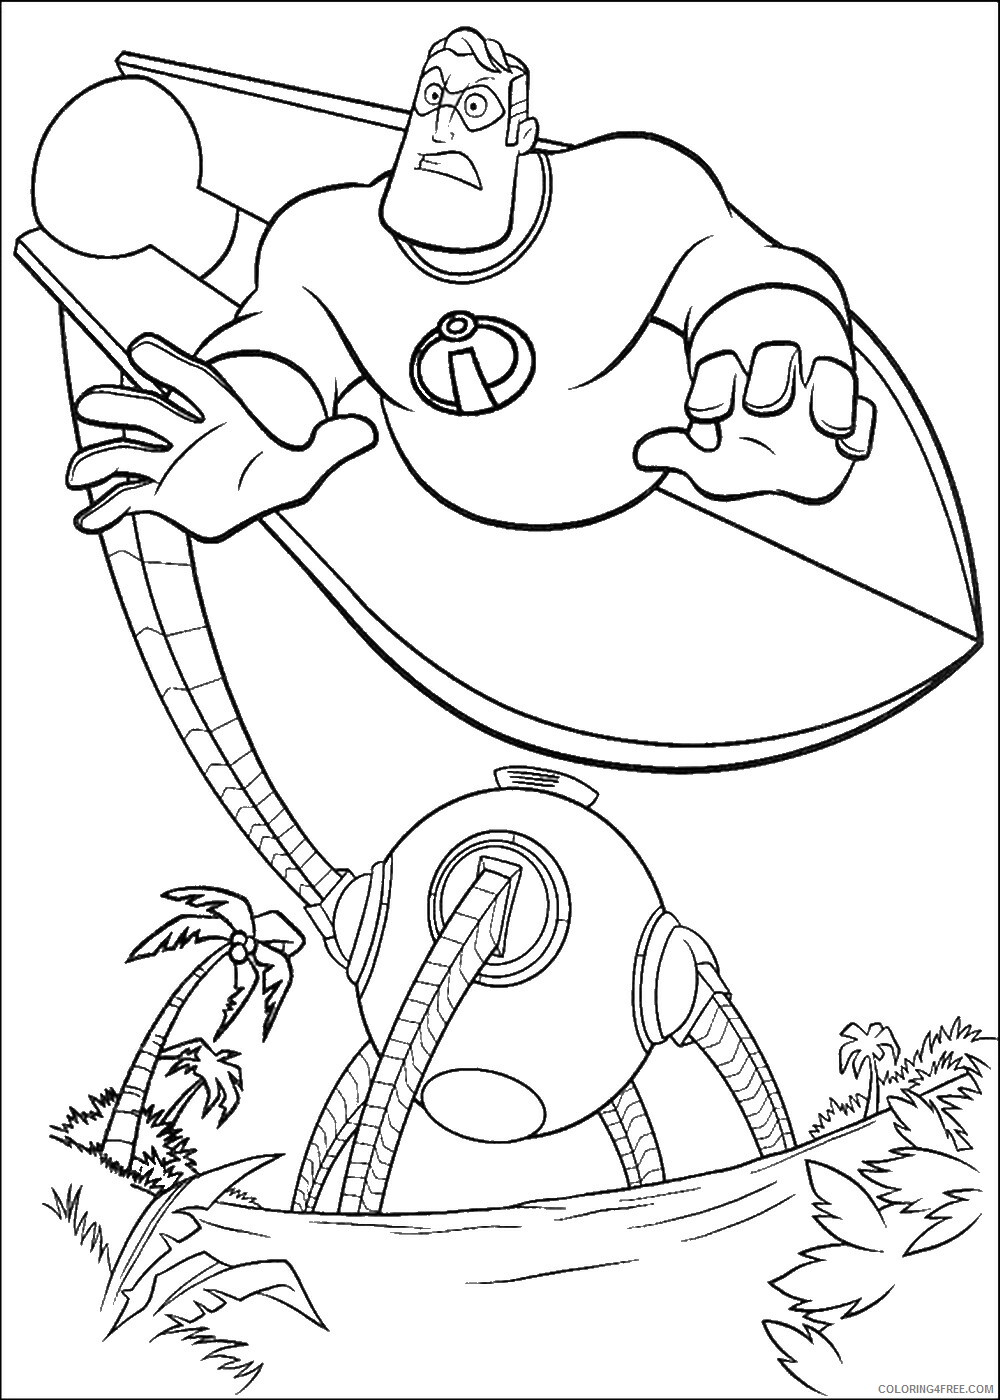 The Incredibles Coloring Pages TV Film Printable 2020 08937 Coloring4free